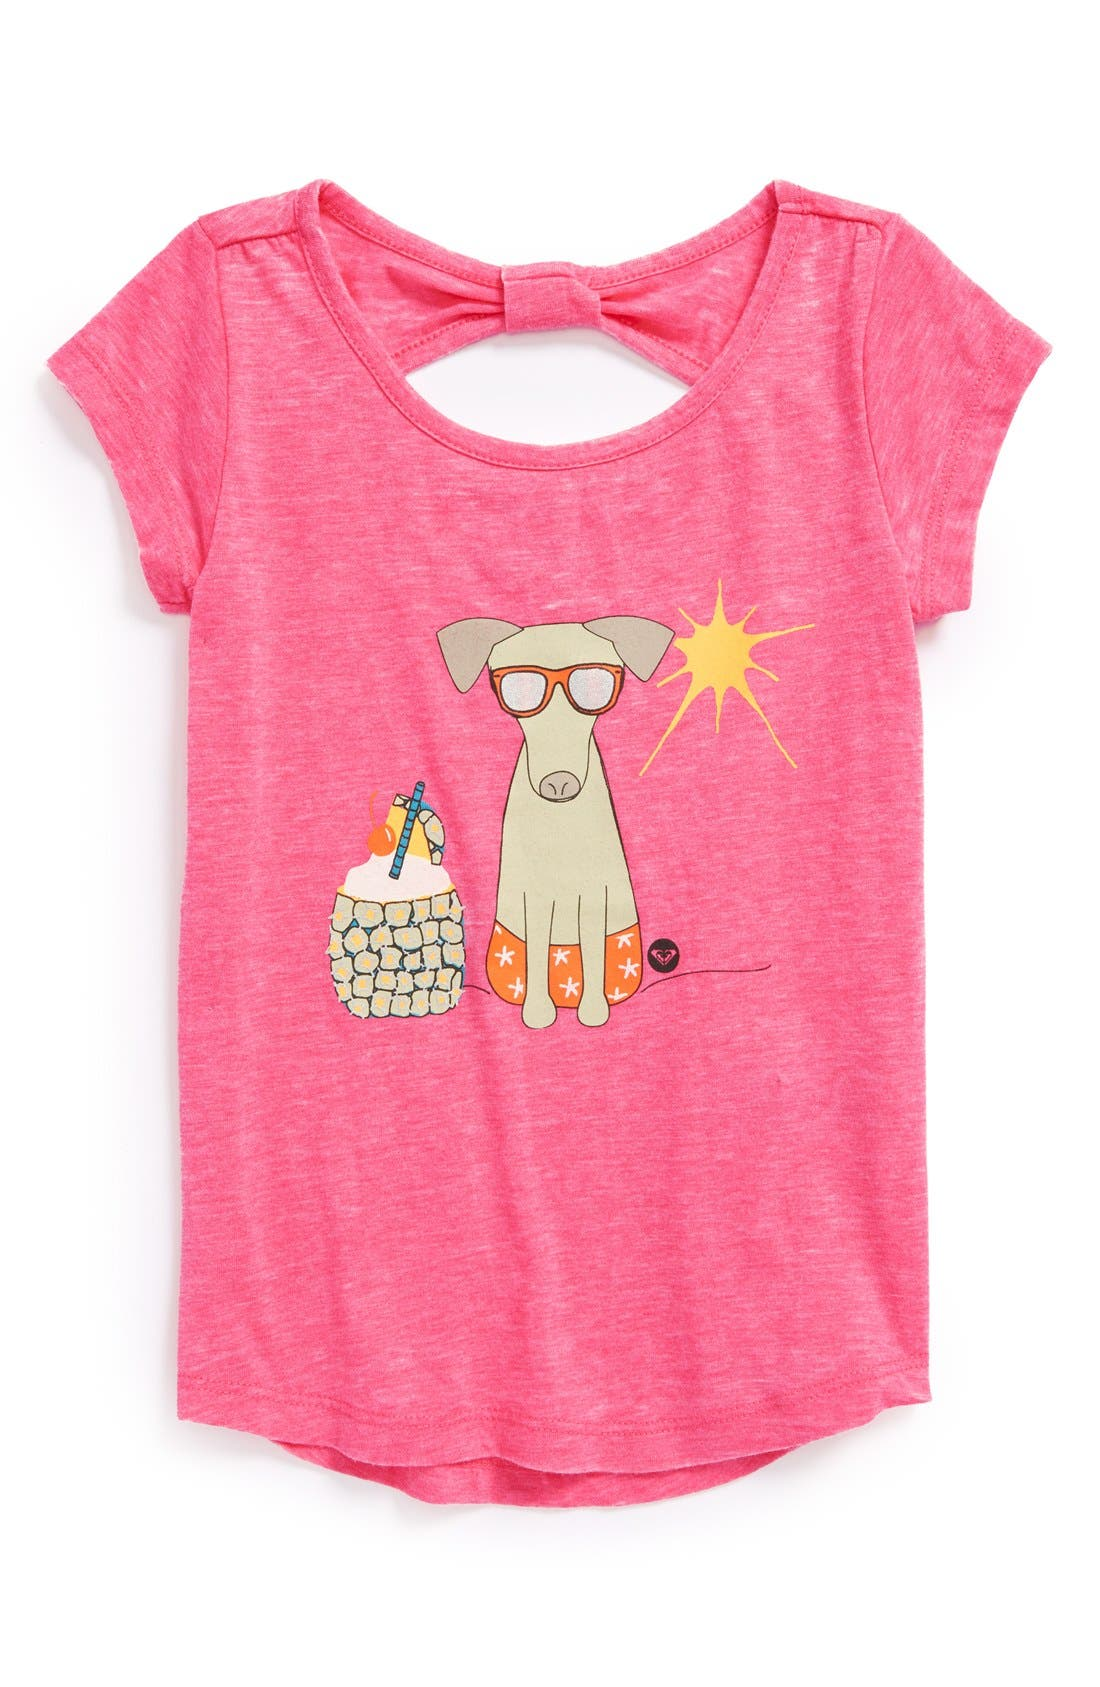 Main Image - Roxy 'Warm Day' Screenprint Tee (Toddler Girls)